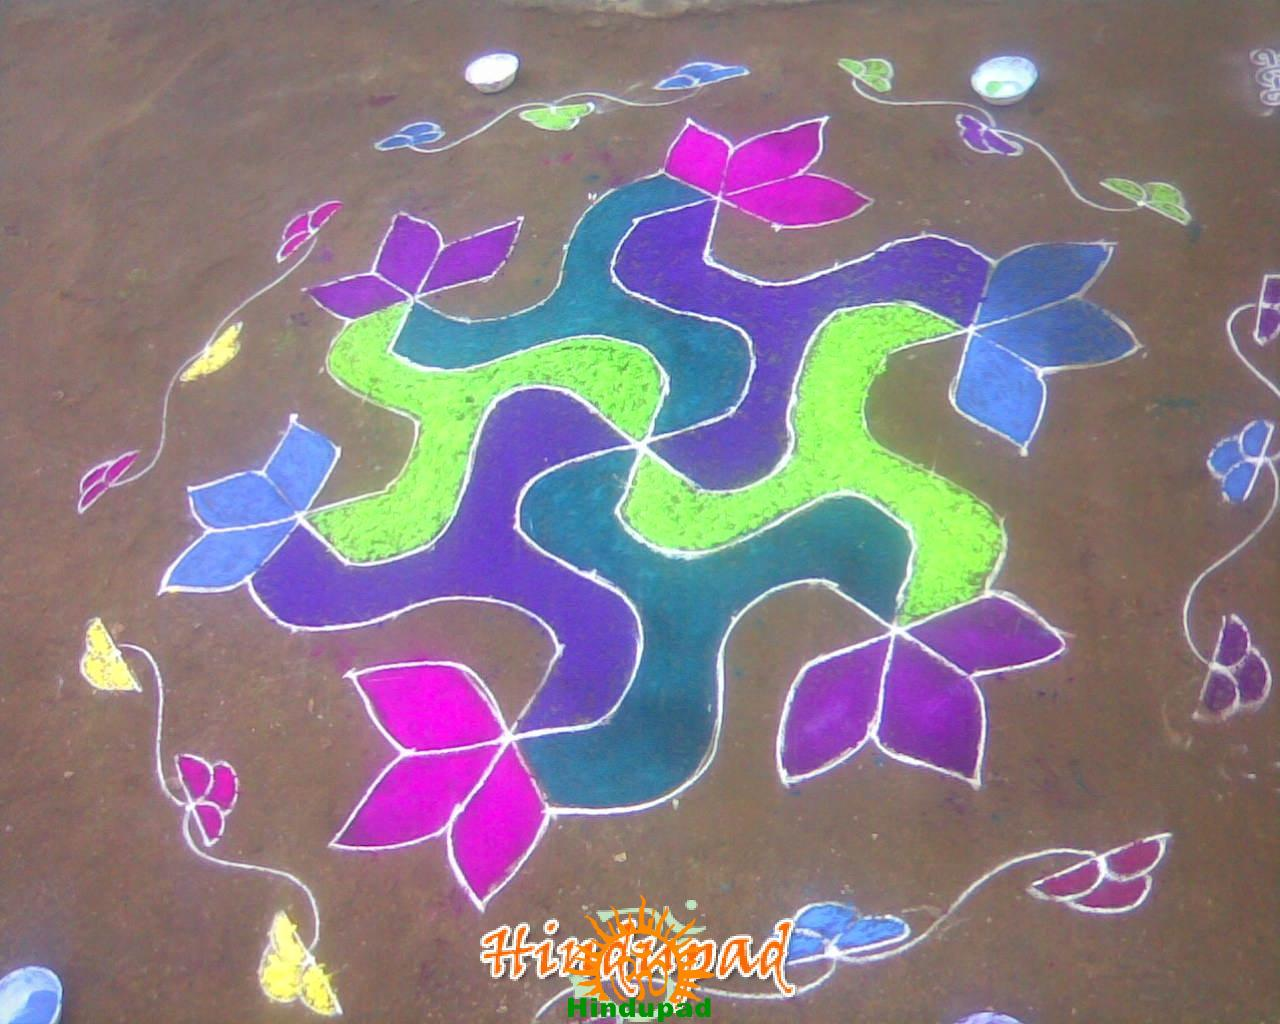 Rangoli Designs For Competition With Concepts Sankranthi muggu 3